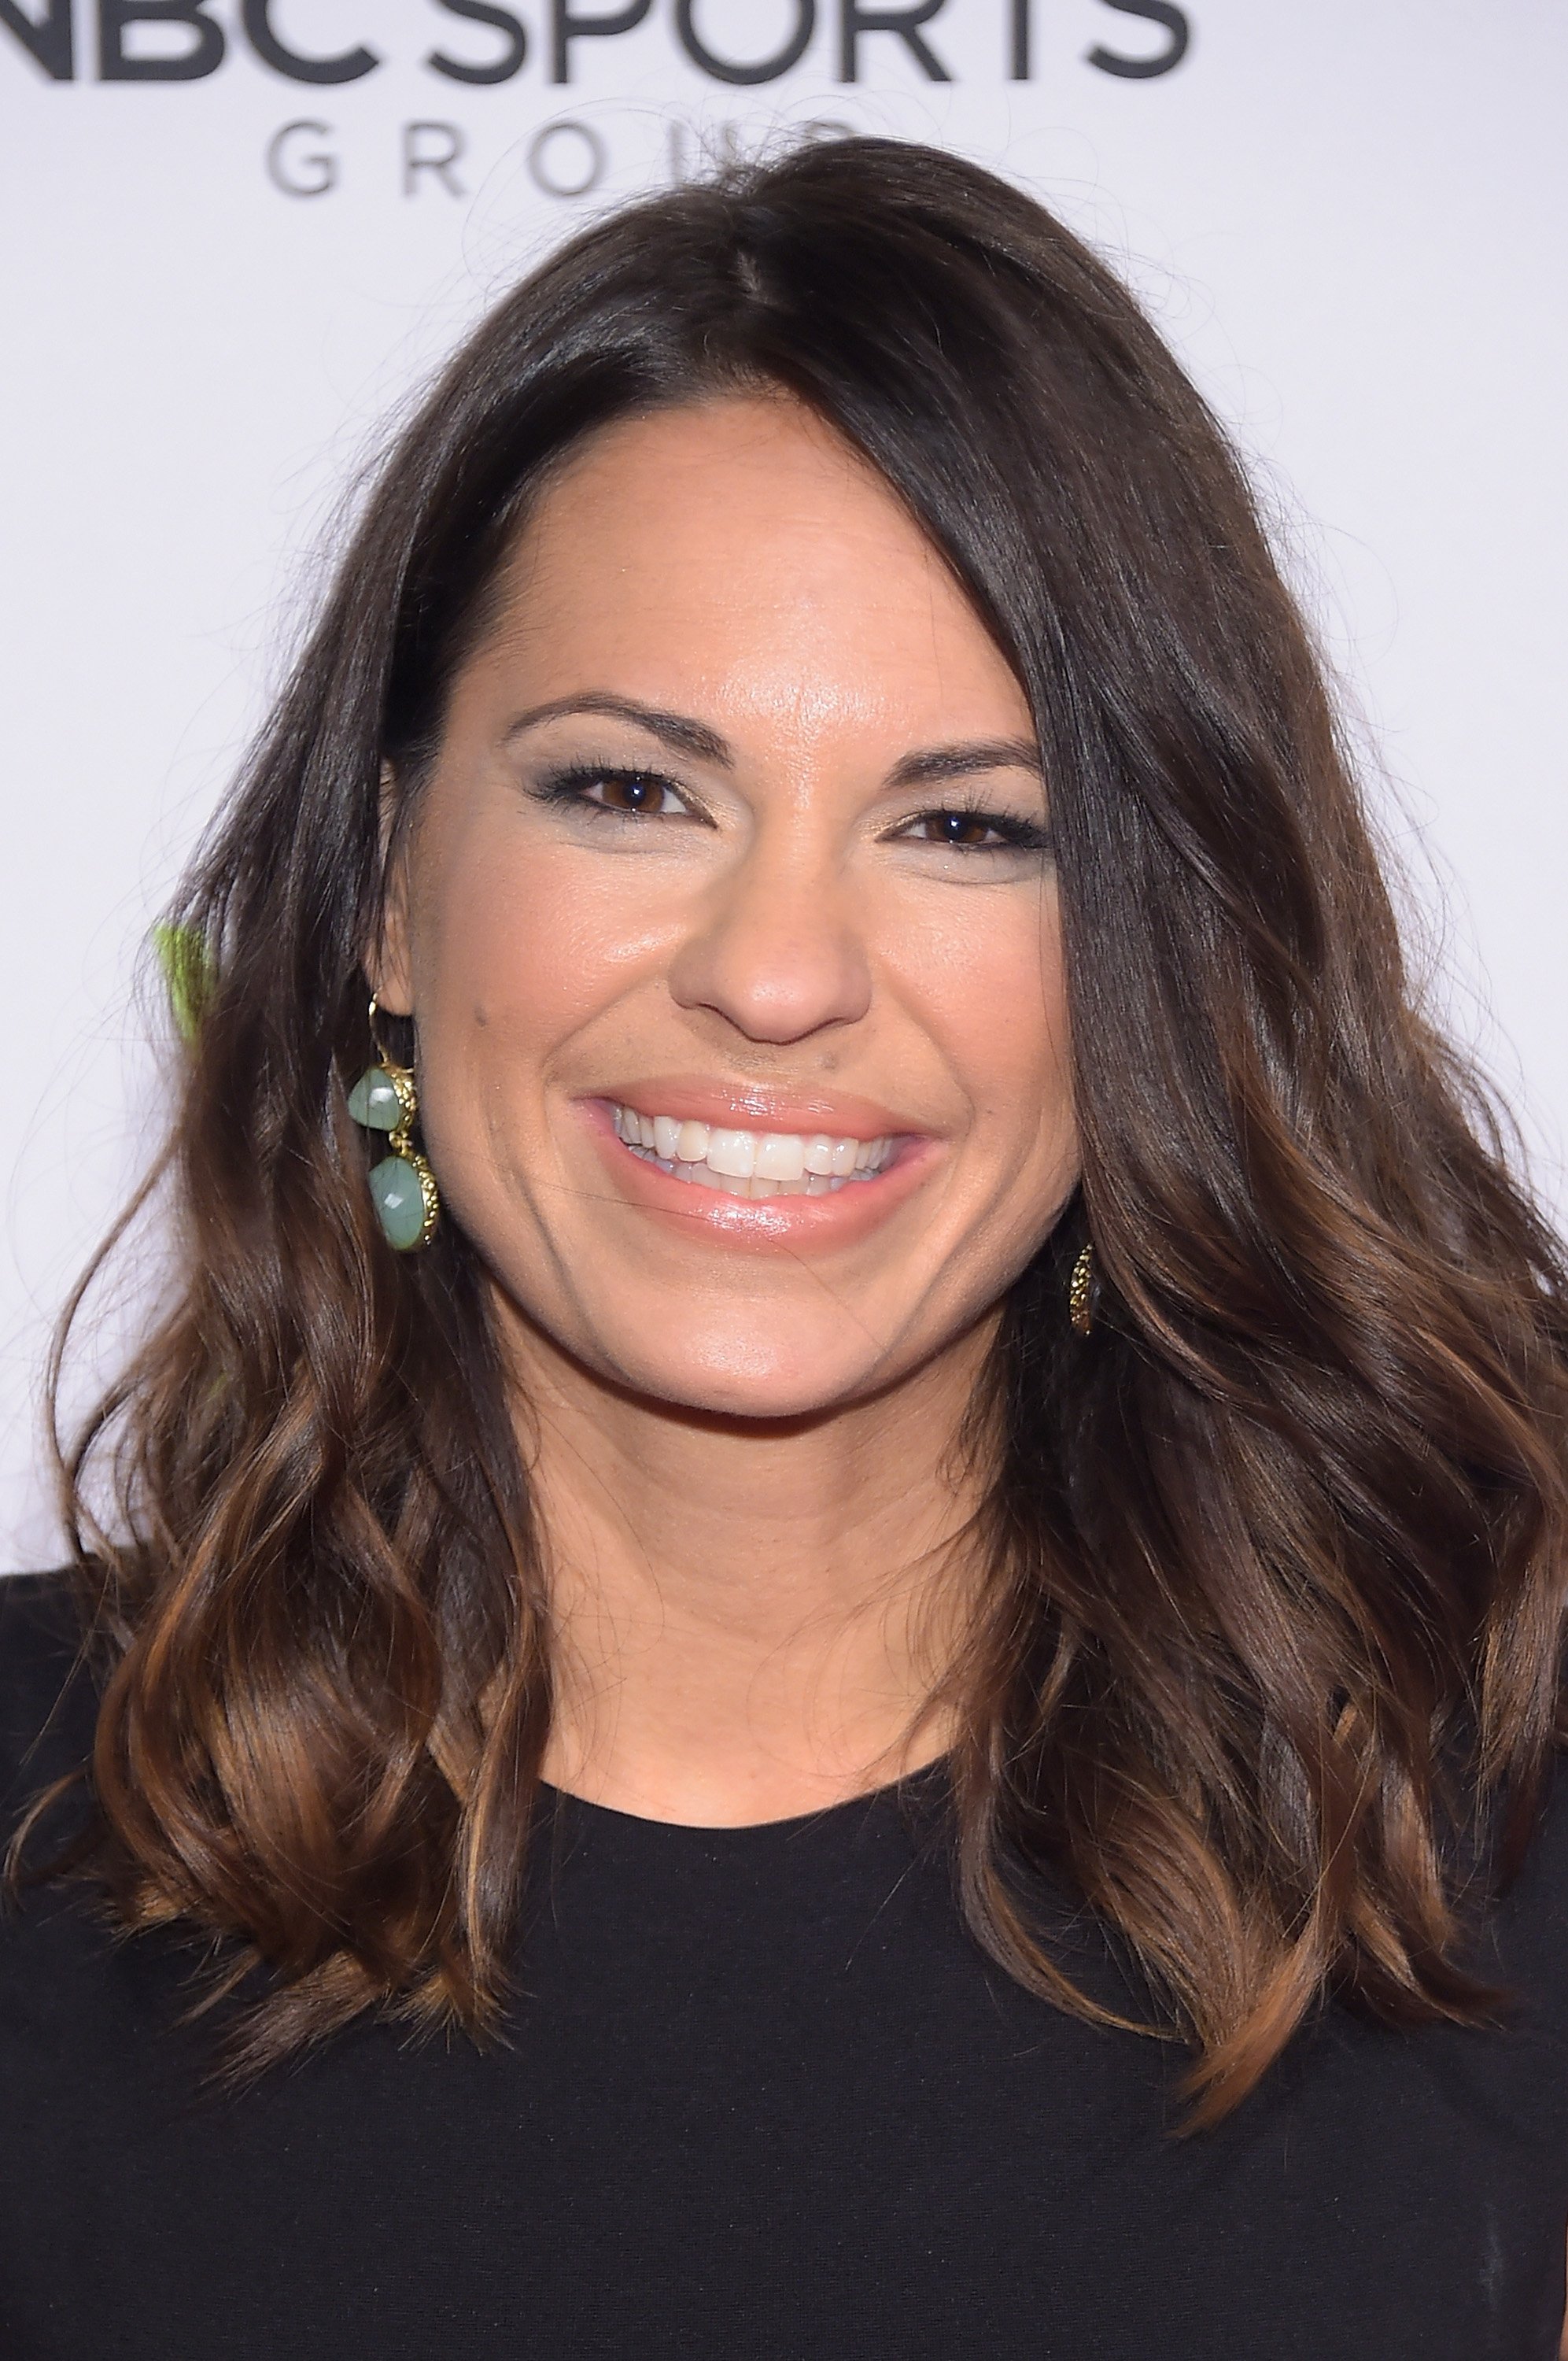 Softbal player Jessica Mendoza attends the Women's Sports Foundation's 35th Annual Salute to Women In Sports awards, a celebration and a fundraiser to ensure more girls and women have access to sports, at Cipriani Wall Street on October 15, 2014 in New York City.